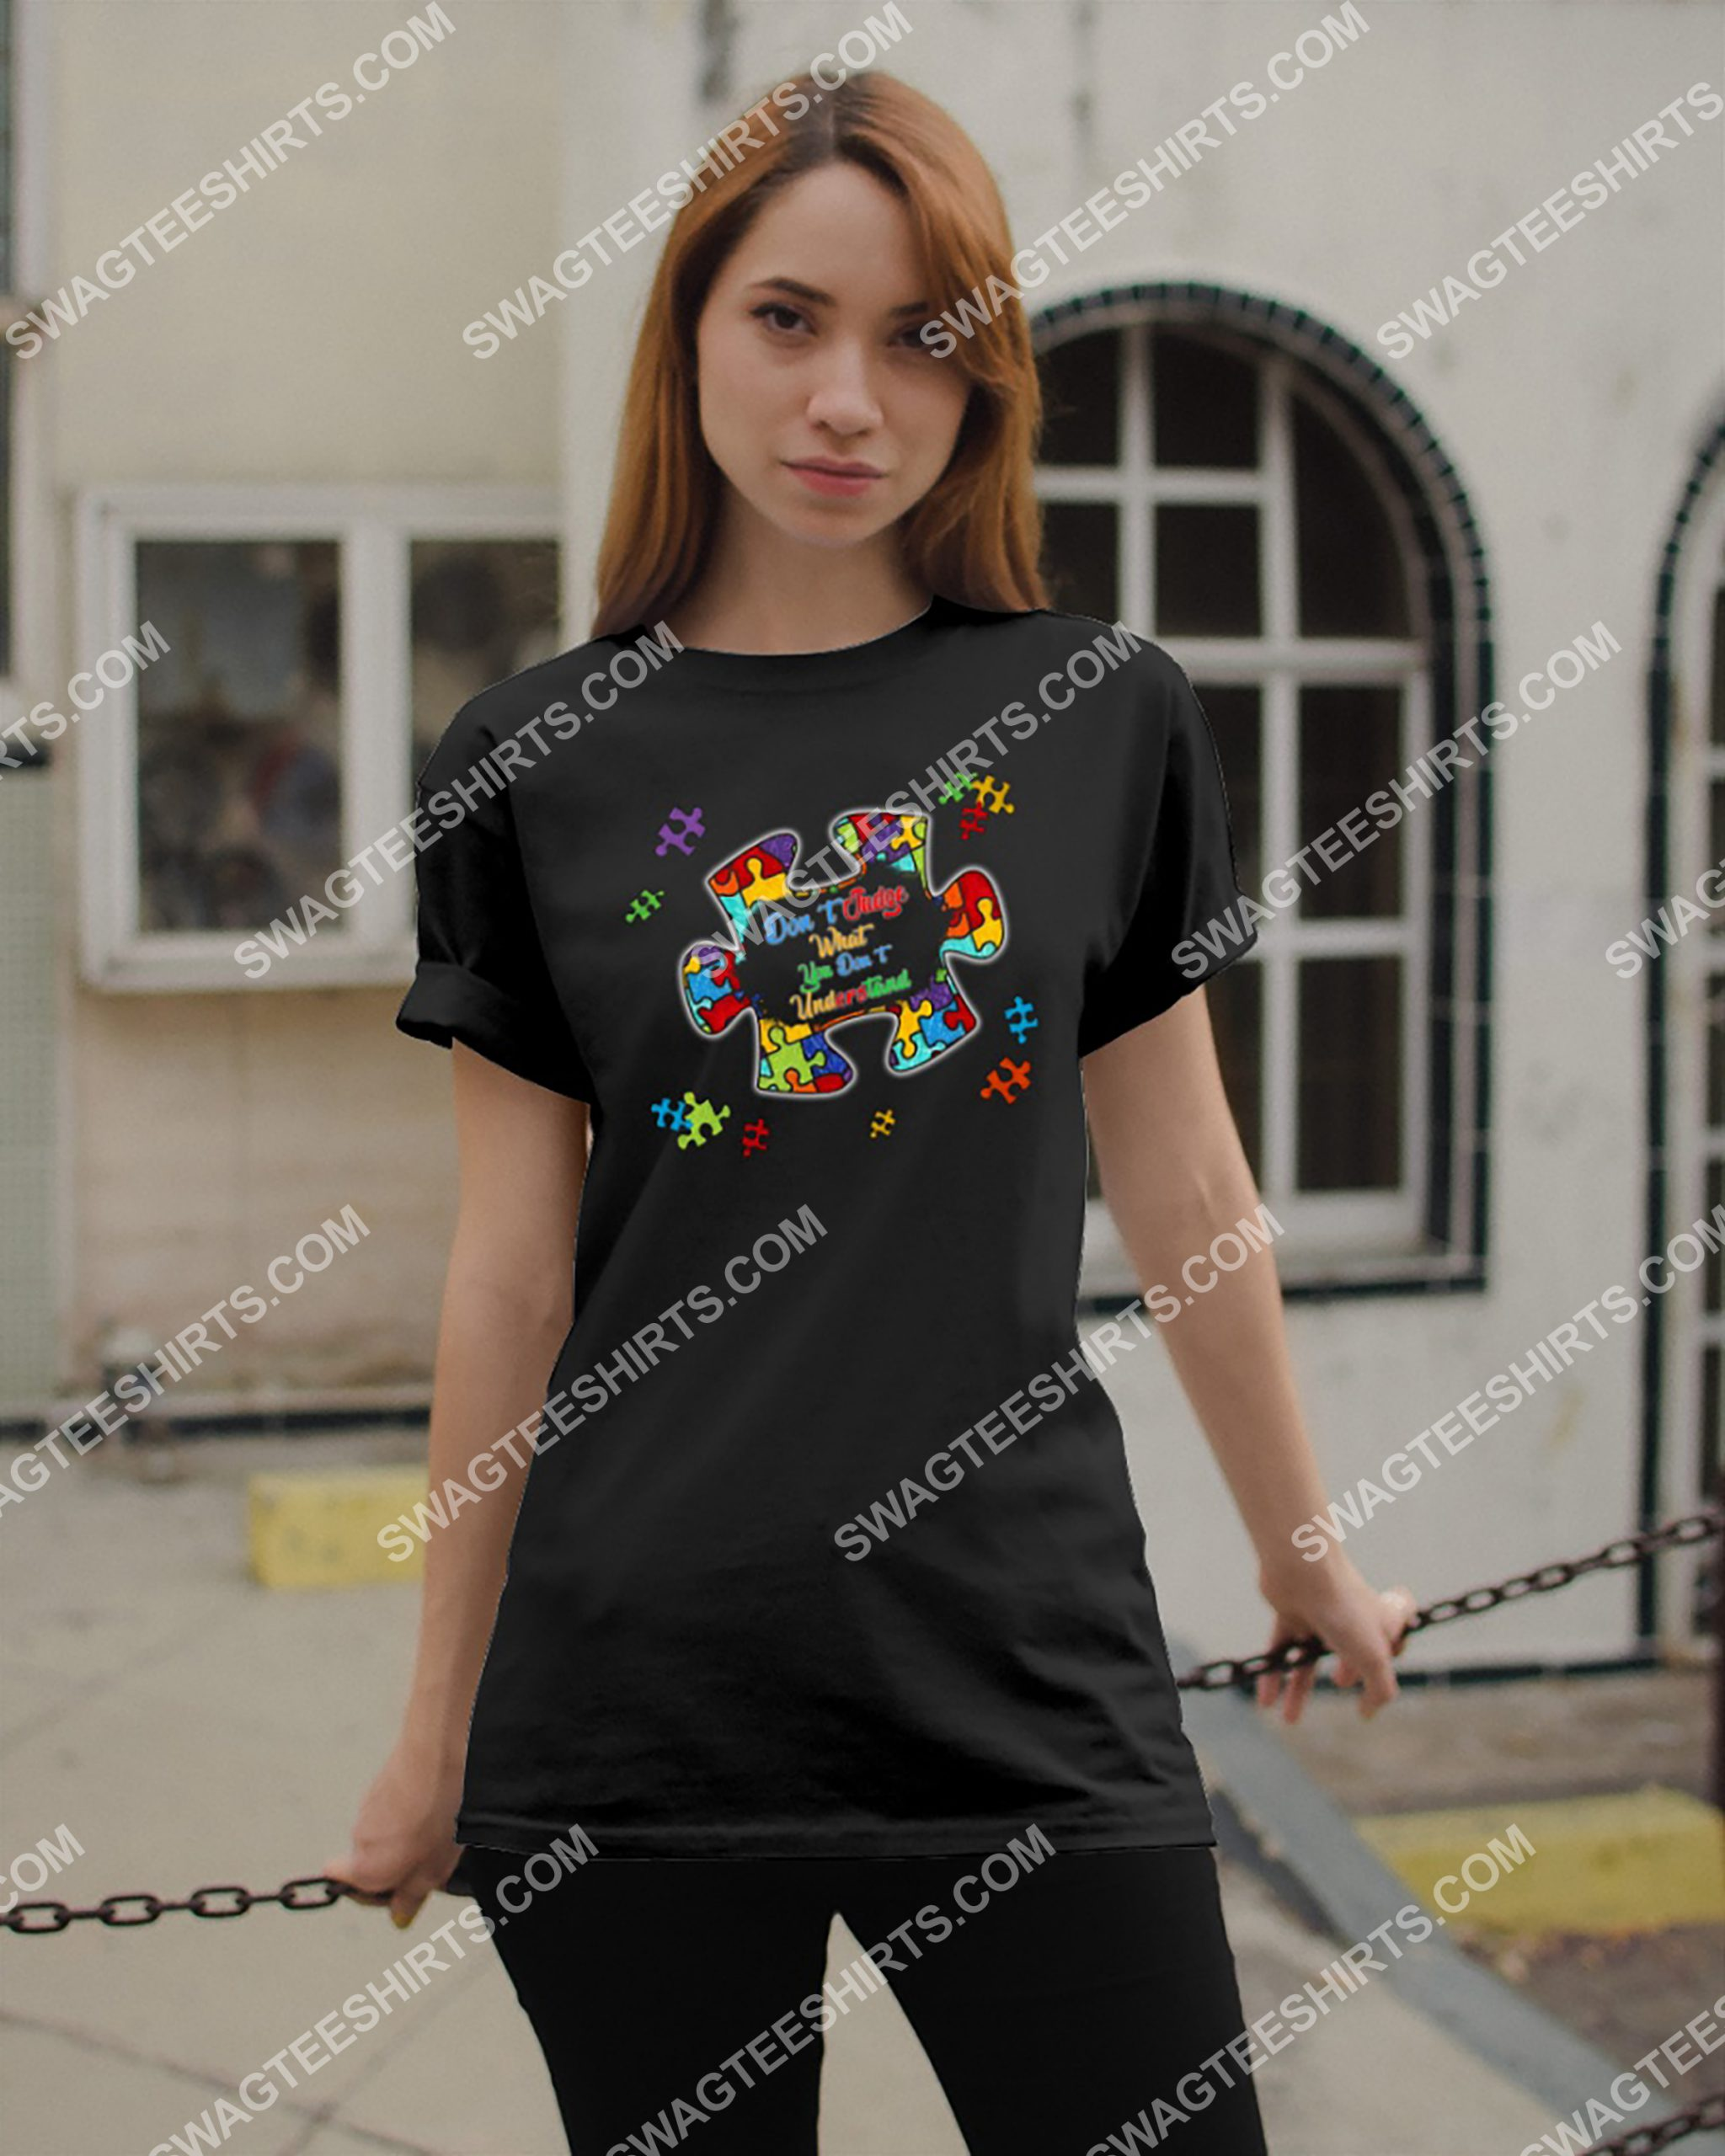 don't judge what you don't understand autism awareness shirt 3(1)